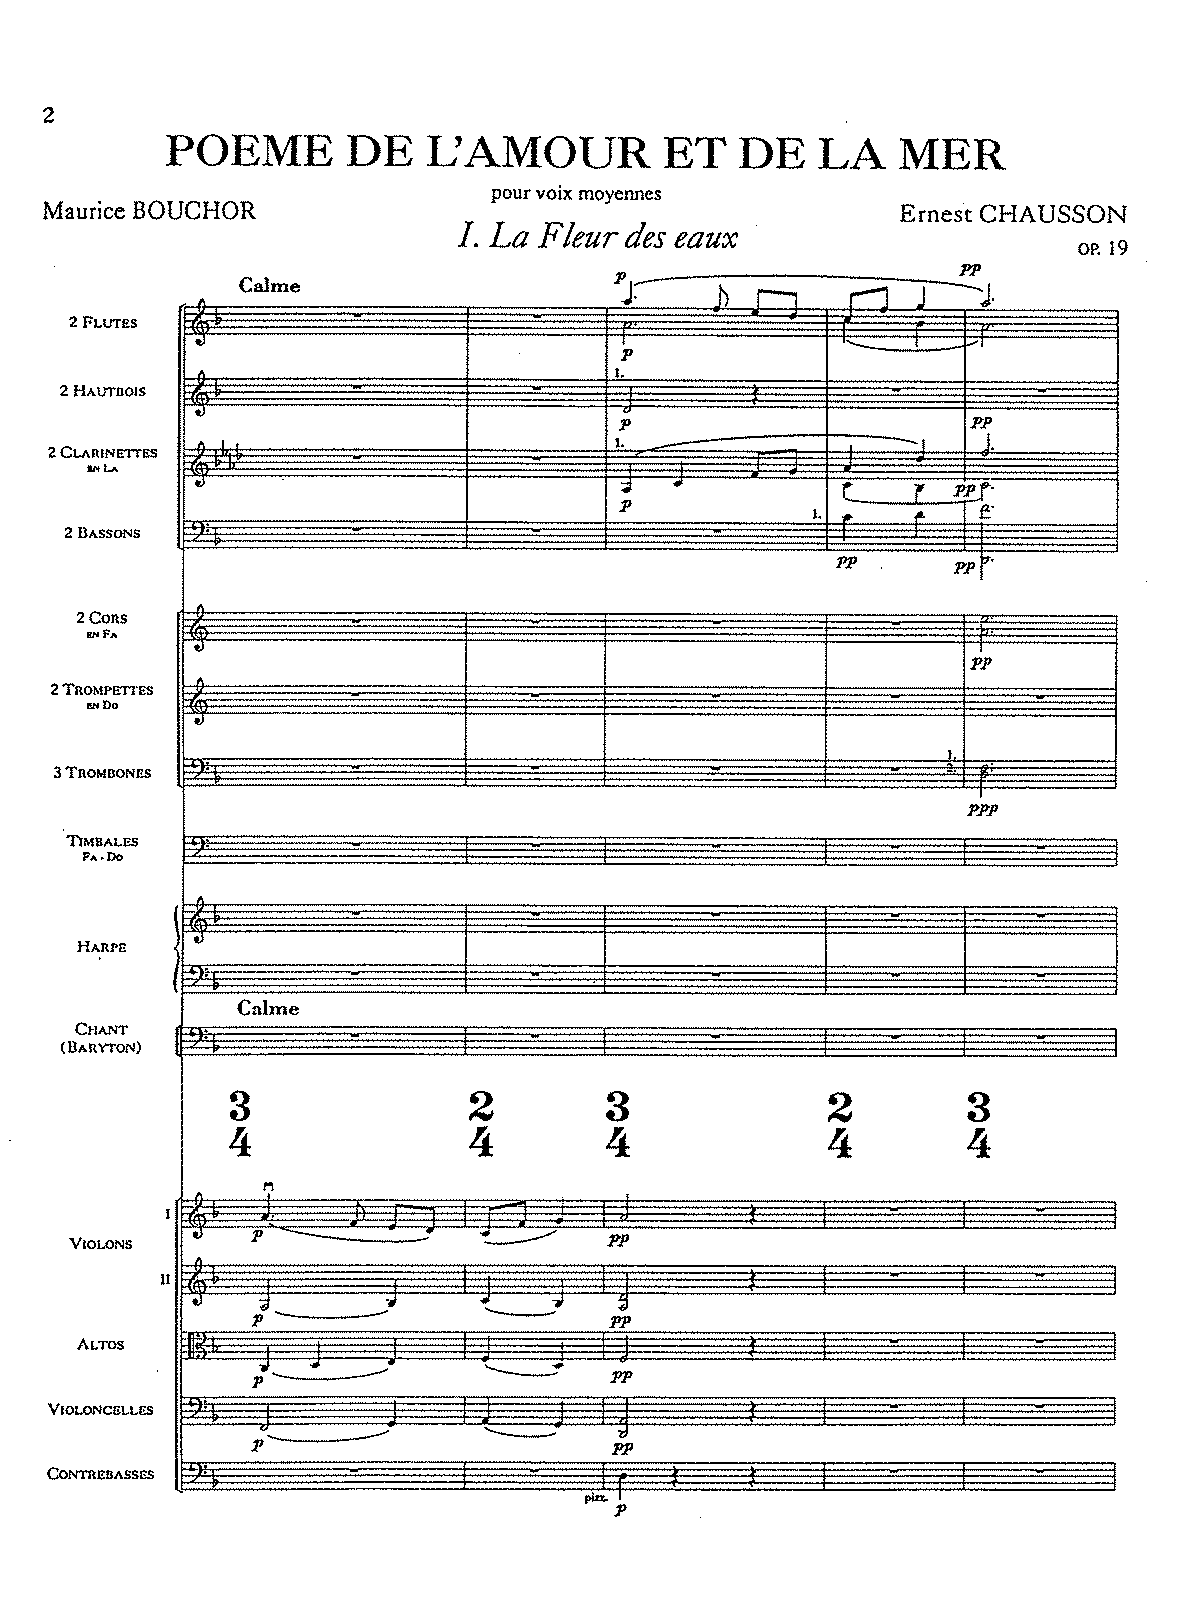 Chausson, op. 19